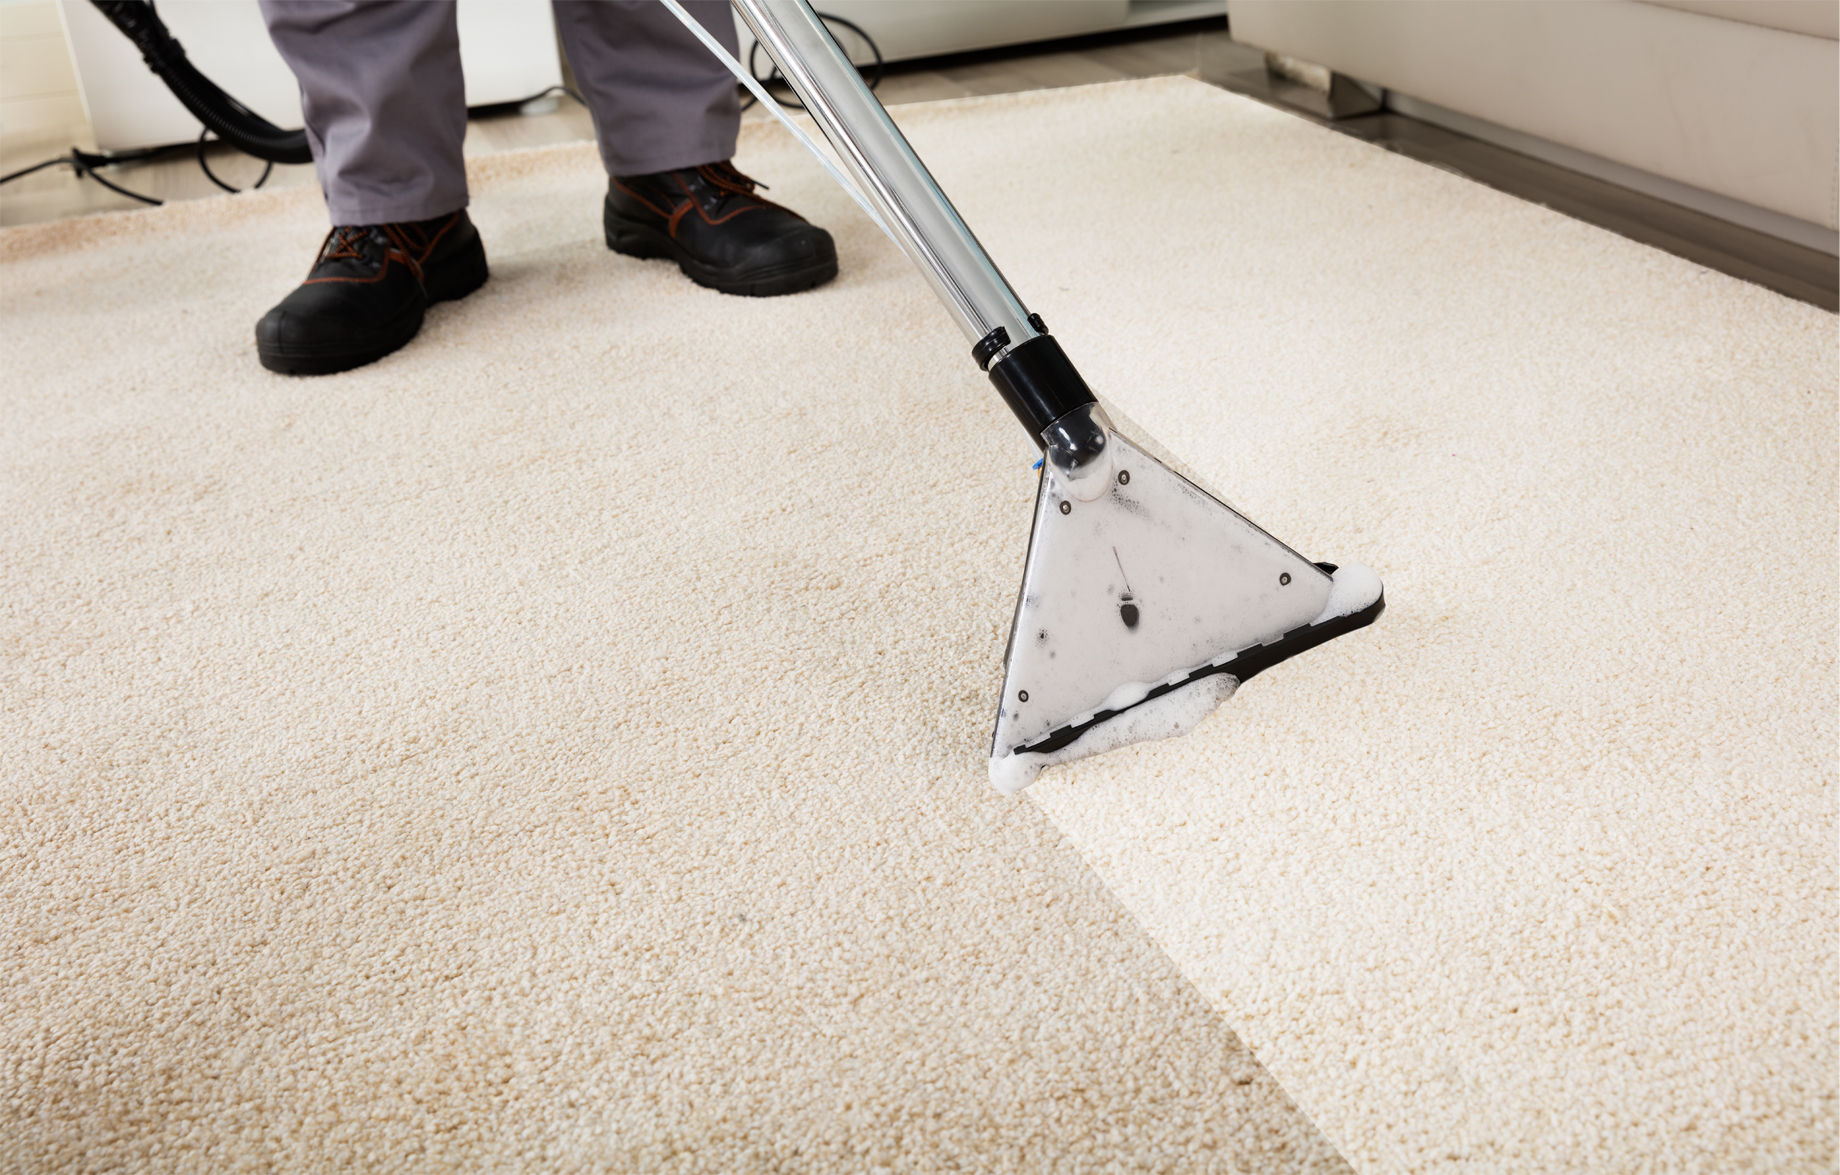 Stamford Maids Carpet Cleaning